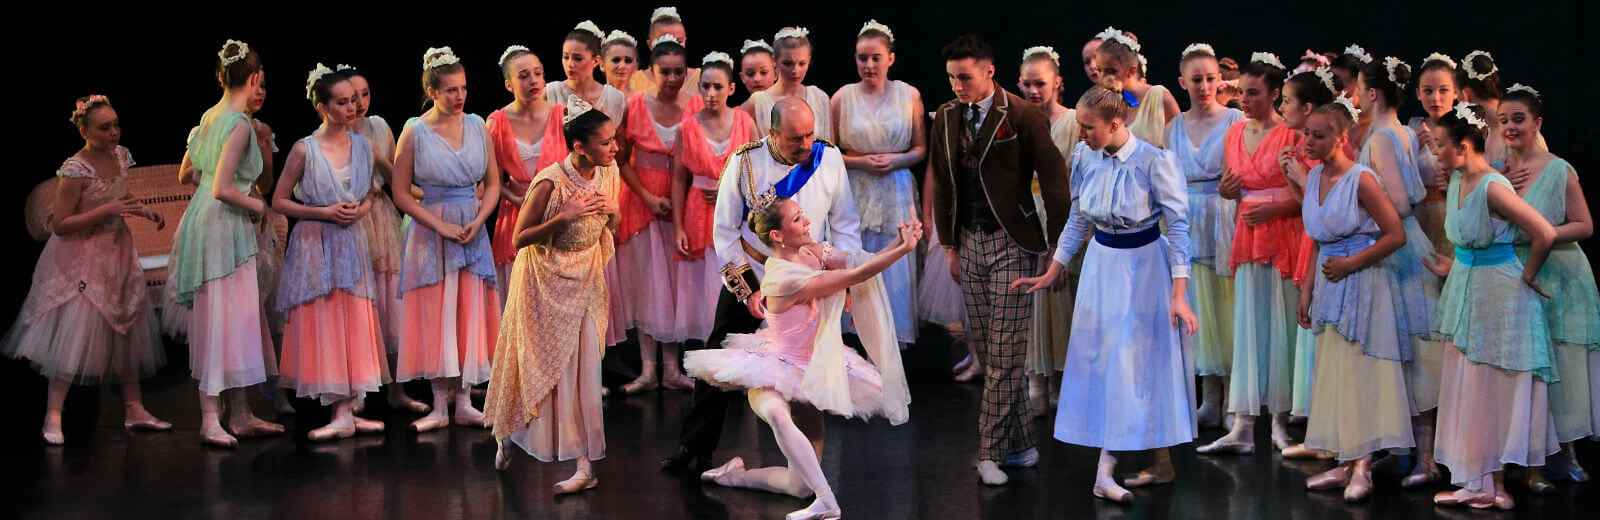 English Youth Ballet: The Sleeping Beauty